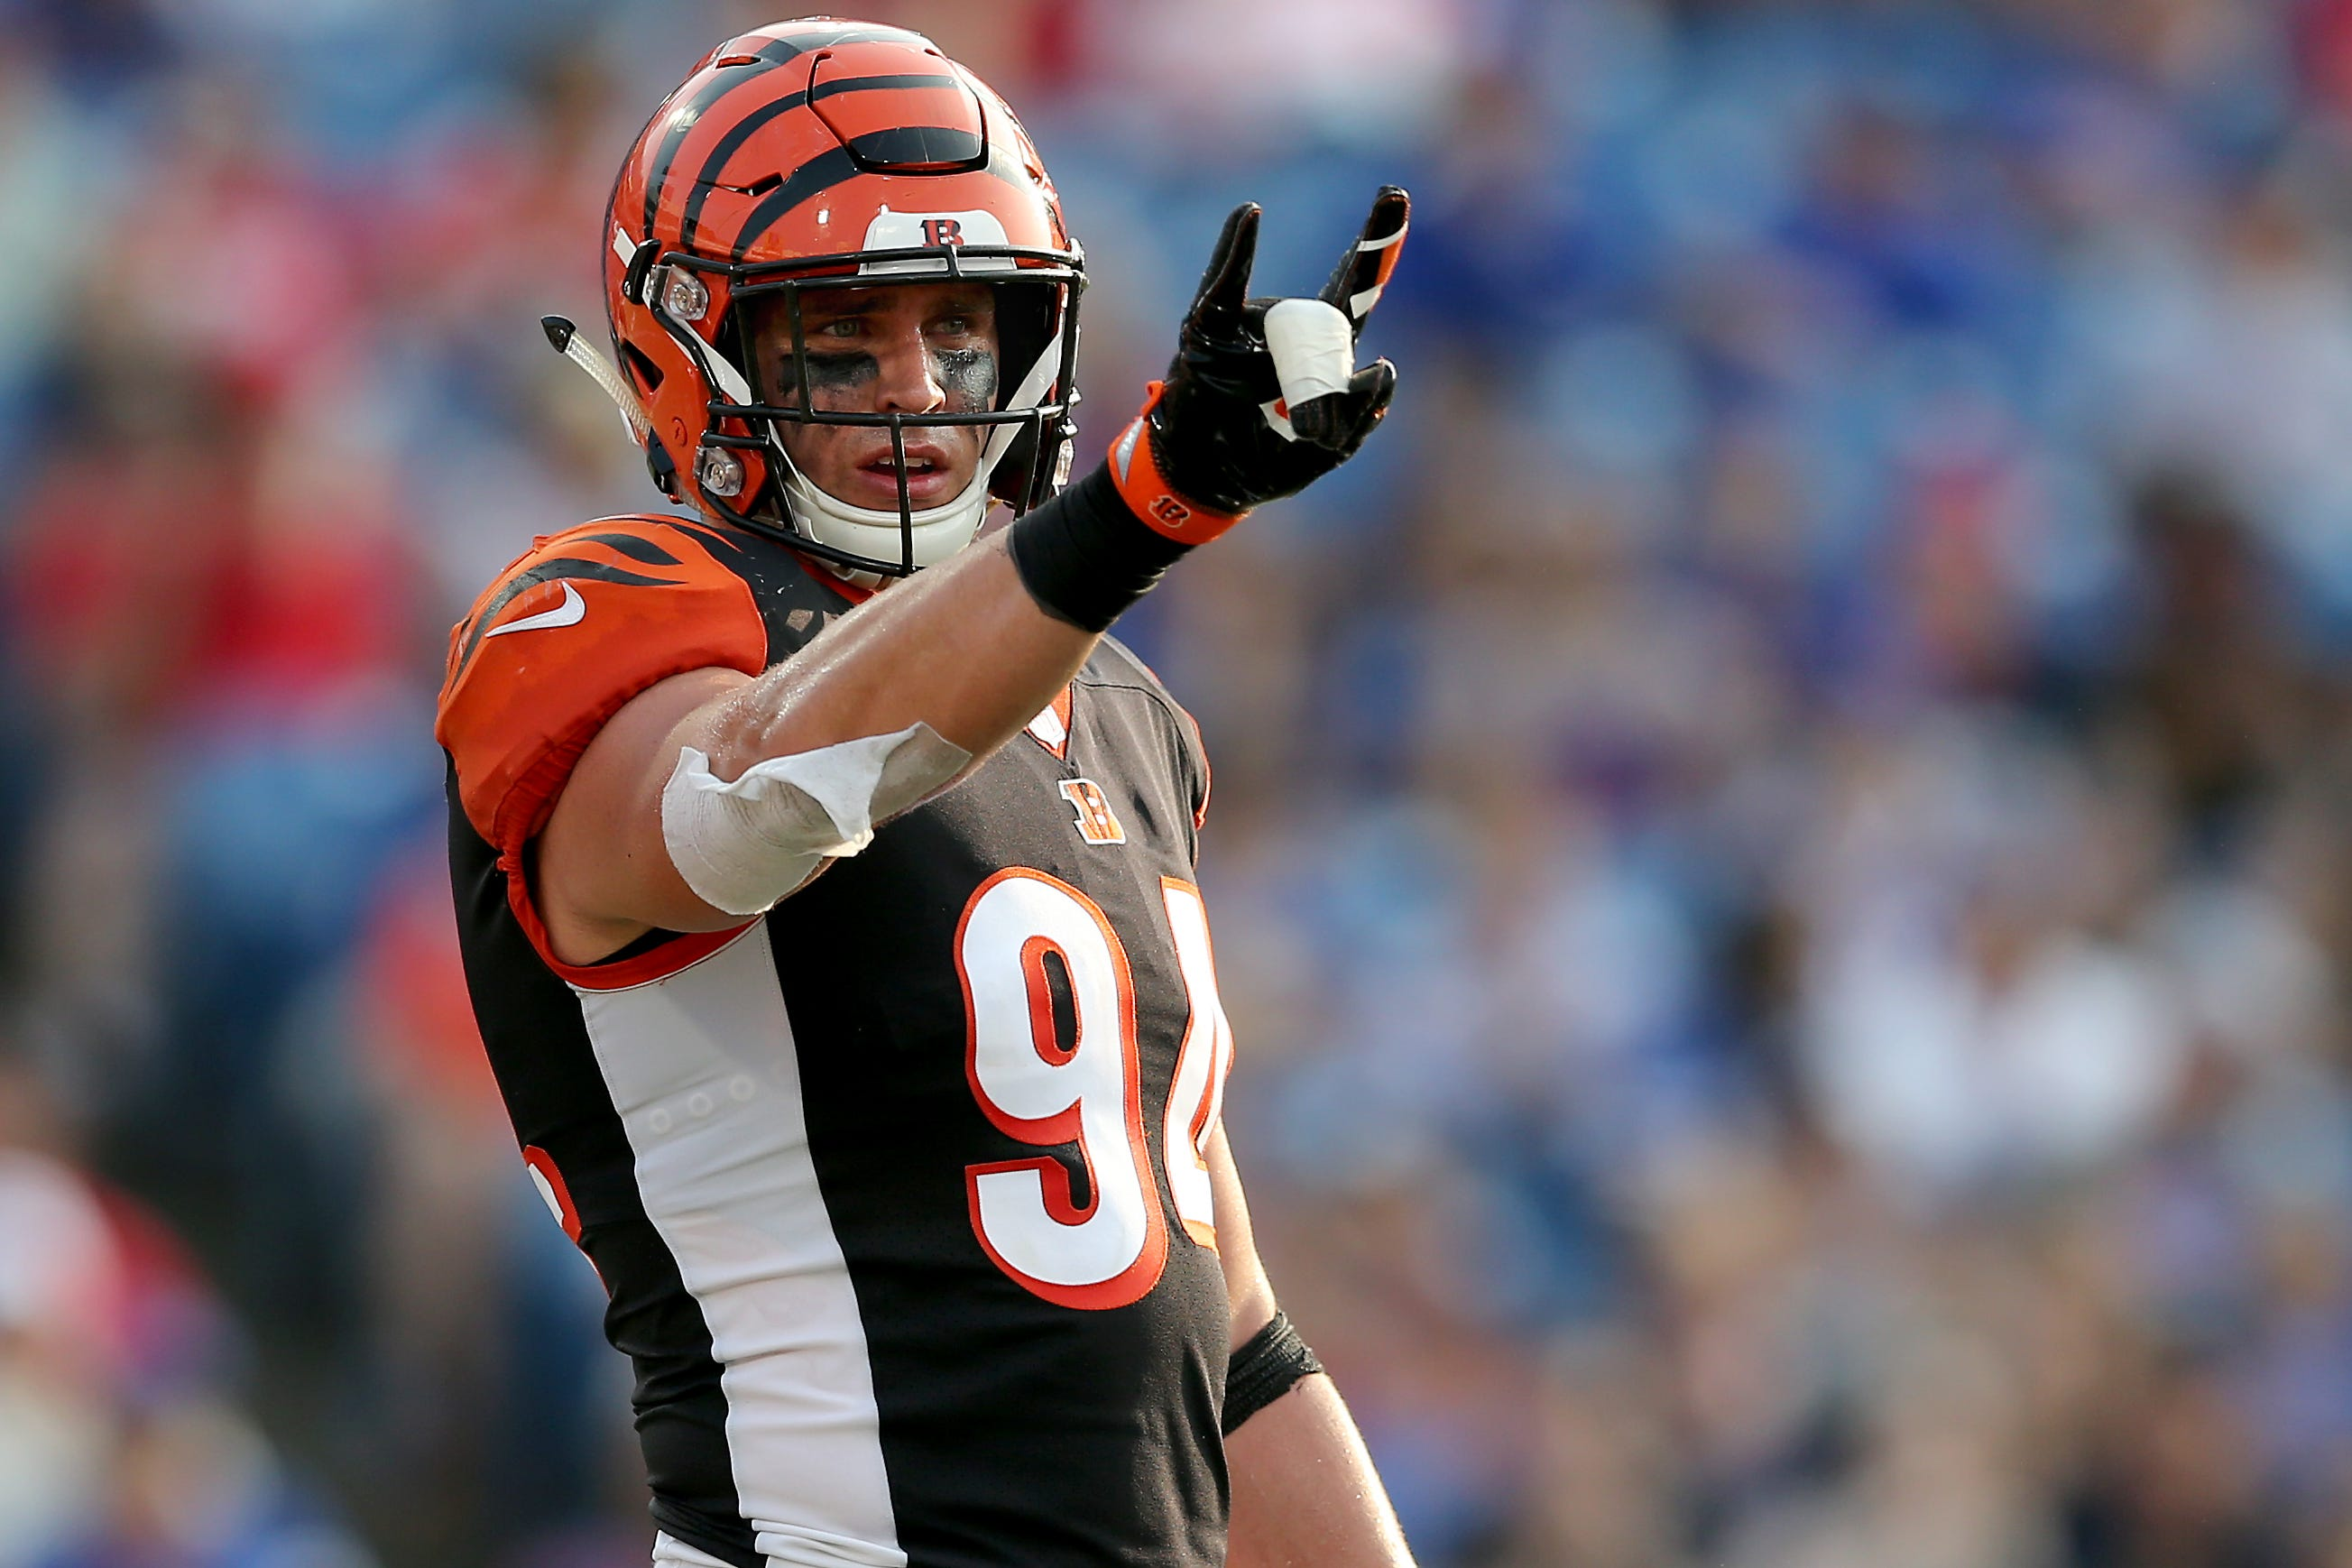 Cincinnati Bengals defensive end Sam Hubbard (94) gestures toward the sideline in the third quarter during the Week 3 NFL preseason game between the Cincinnati Bengals and the Buffalo Bills, Sunday, Aug. 26, 2018, at New Era Stadium in Orchard Park, New York.